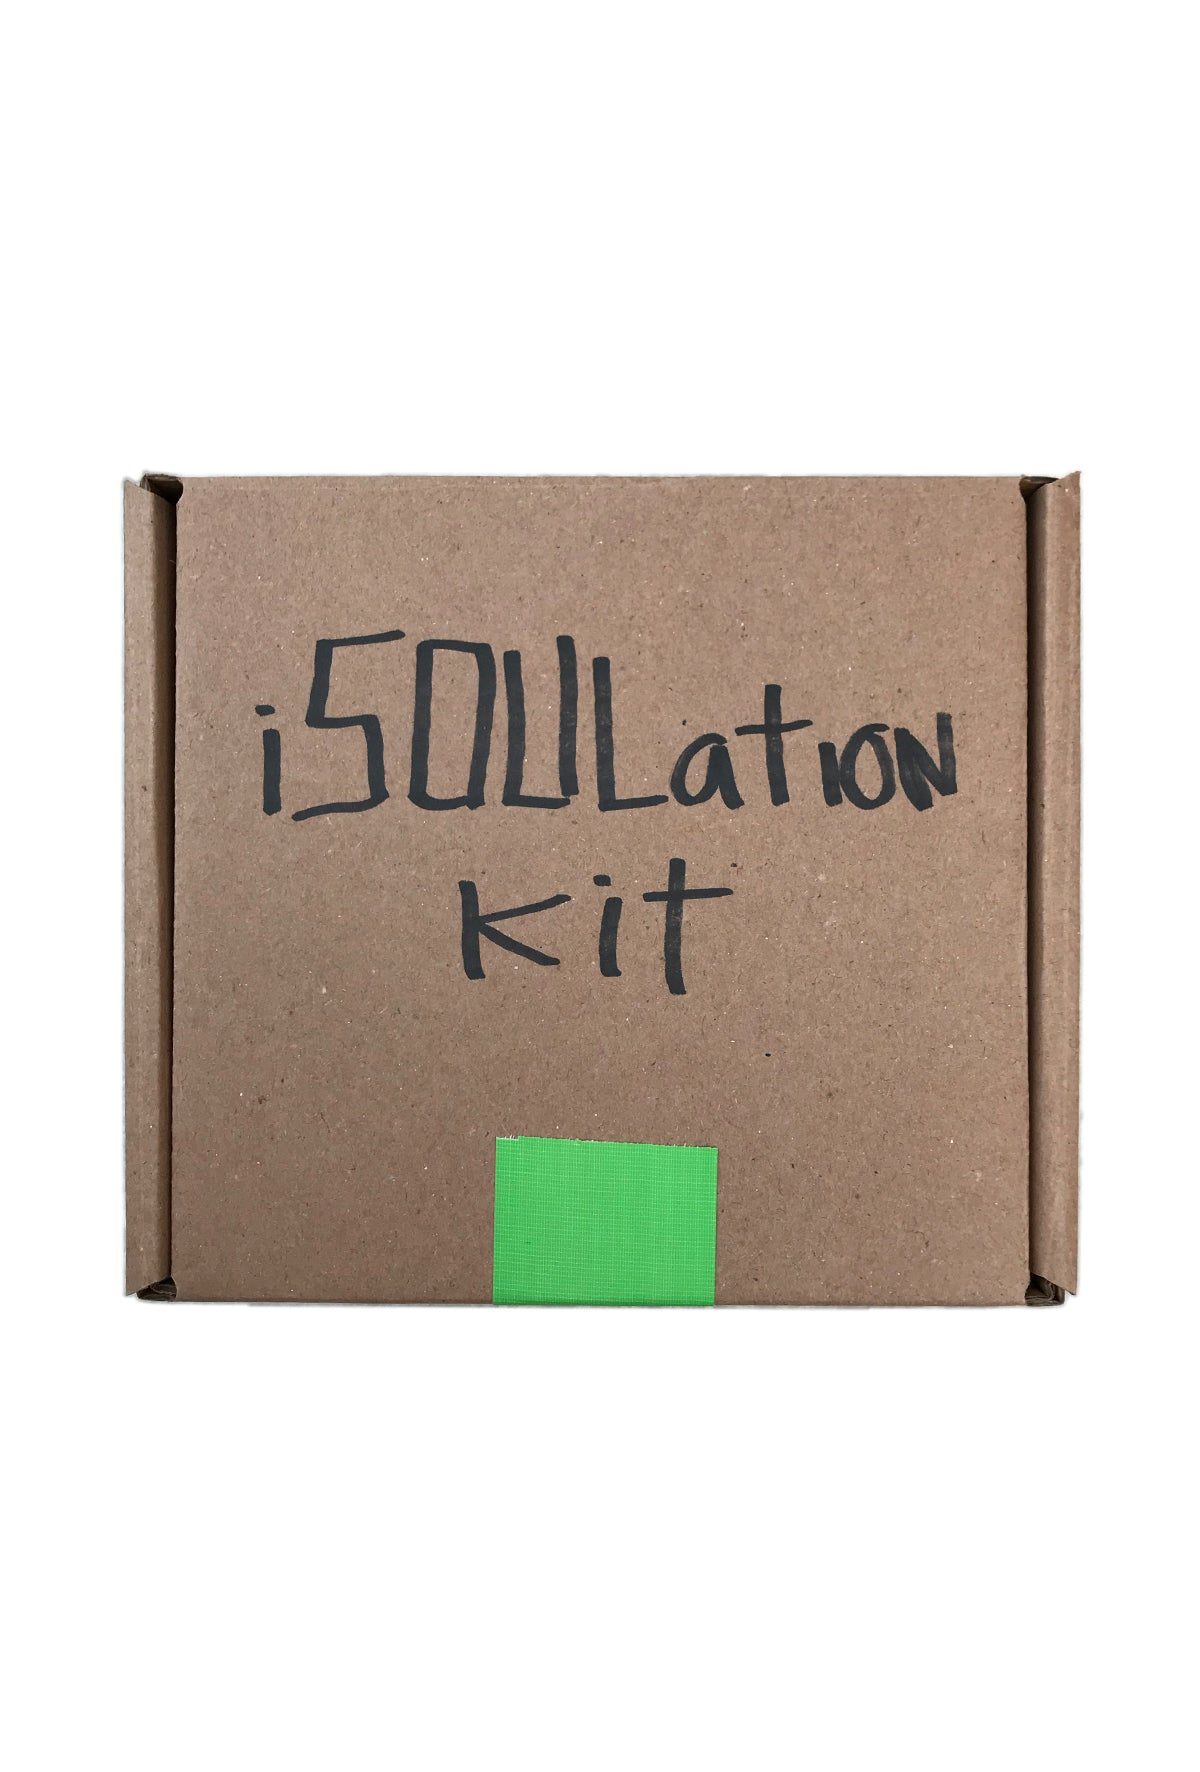 iSOULantion KIT